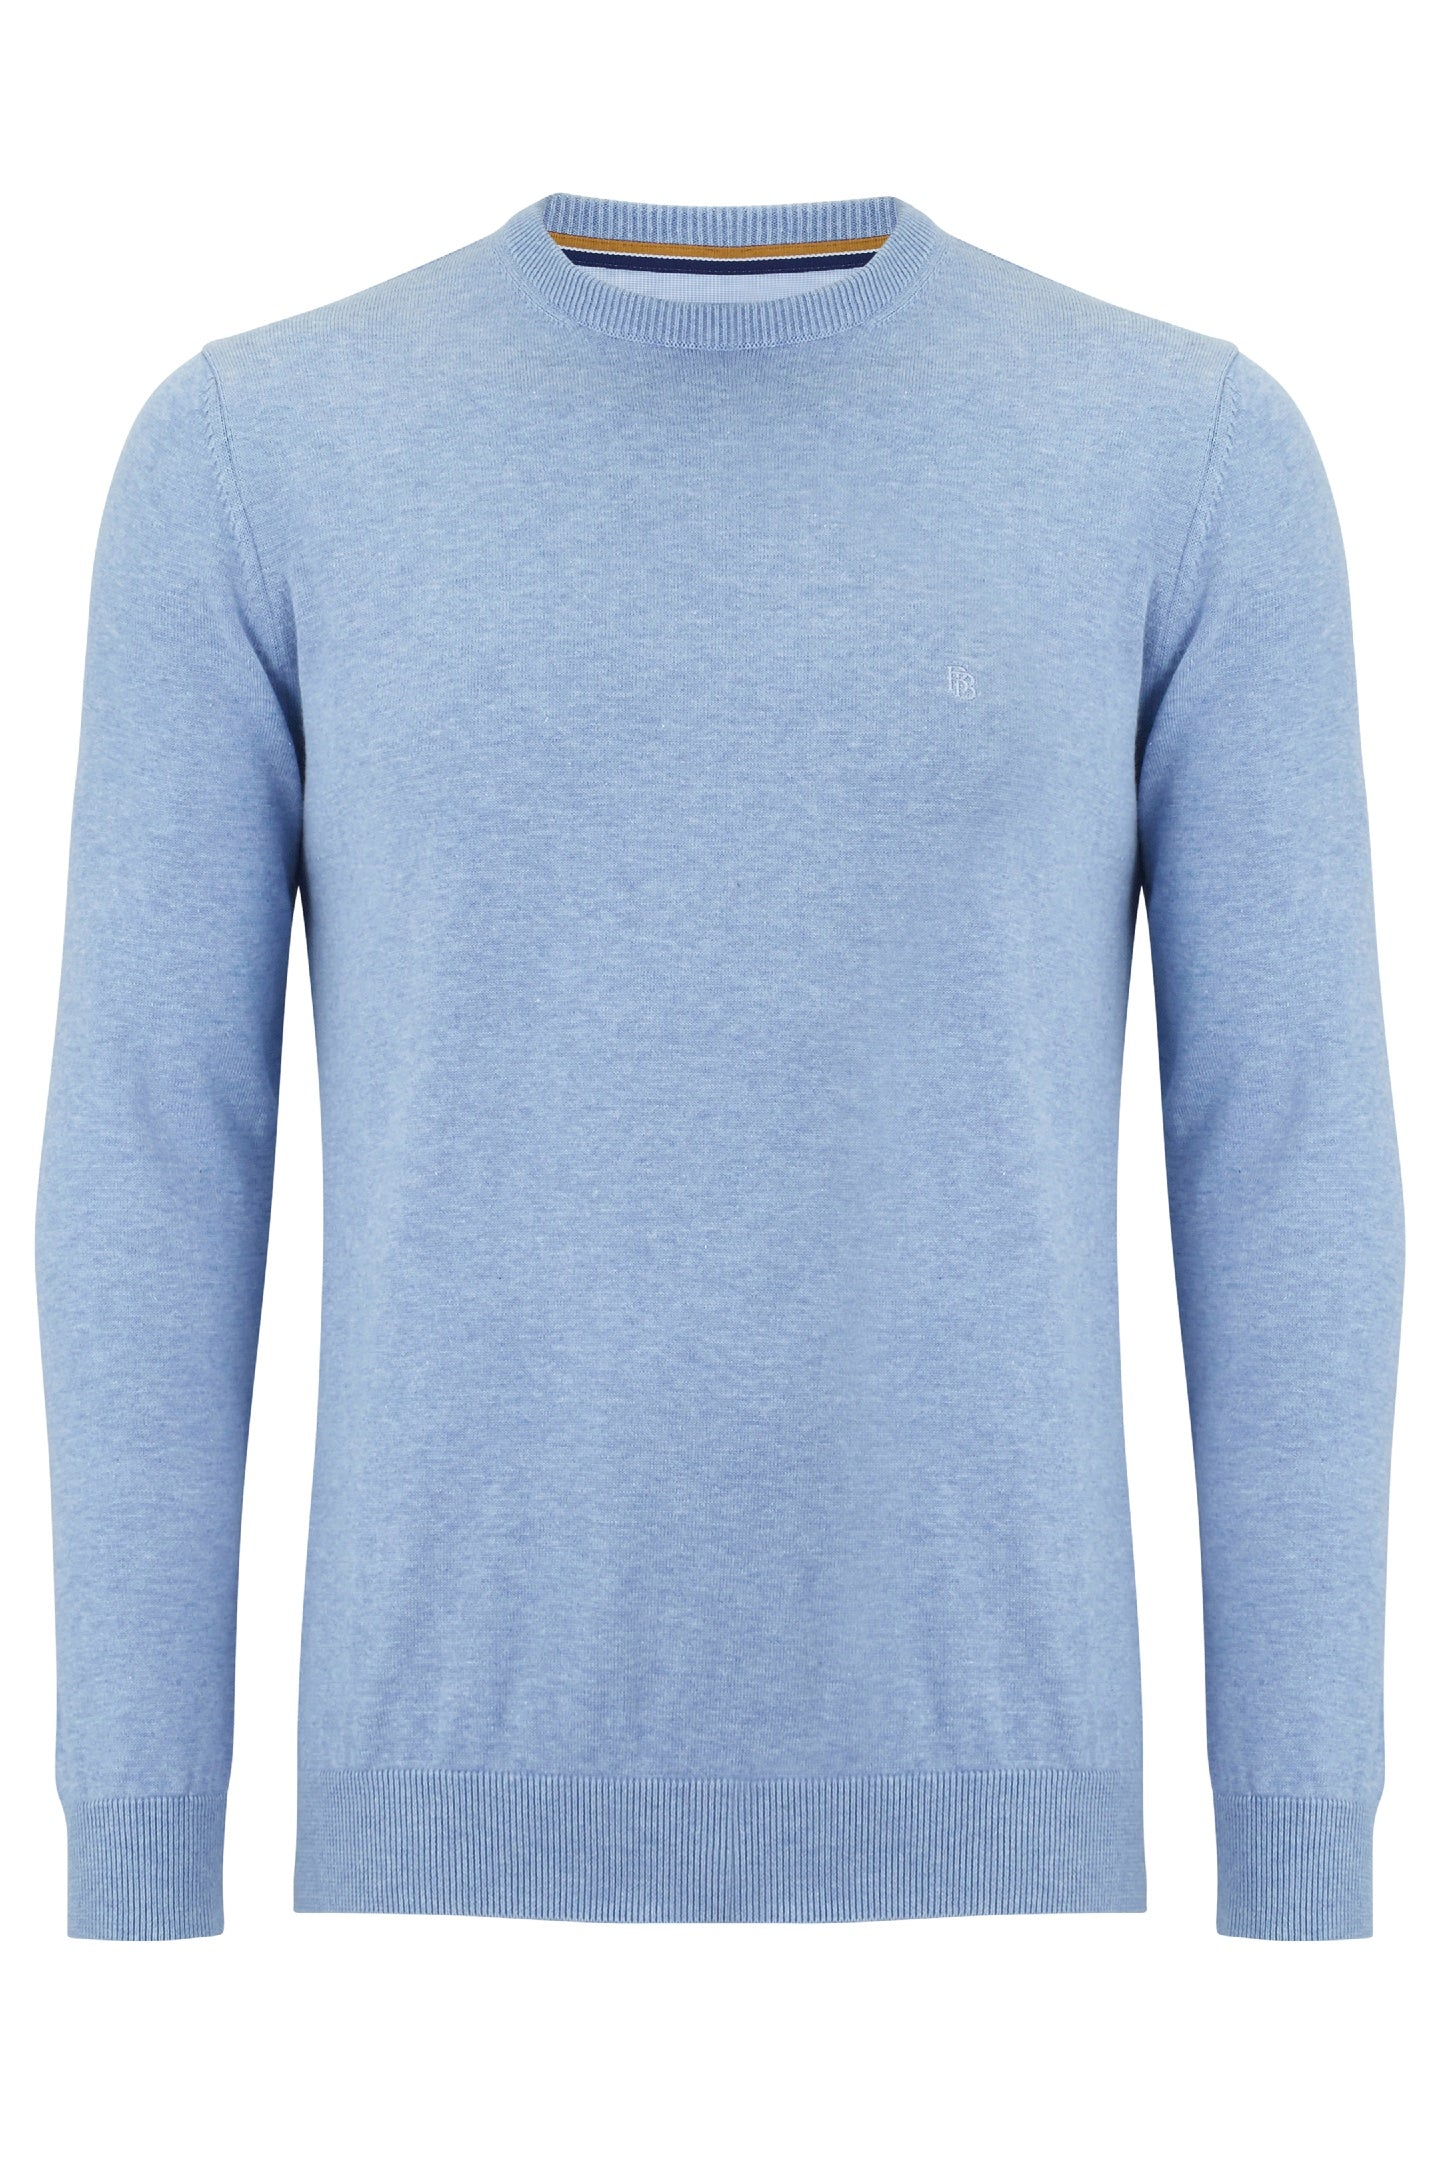 Crew Neck Benetti Menswear Sweater